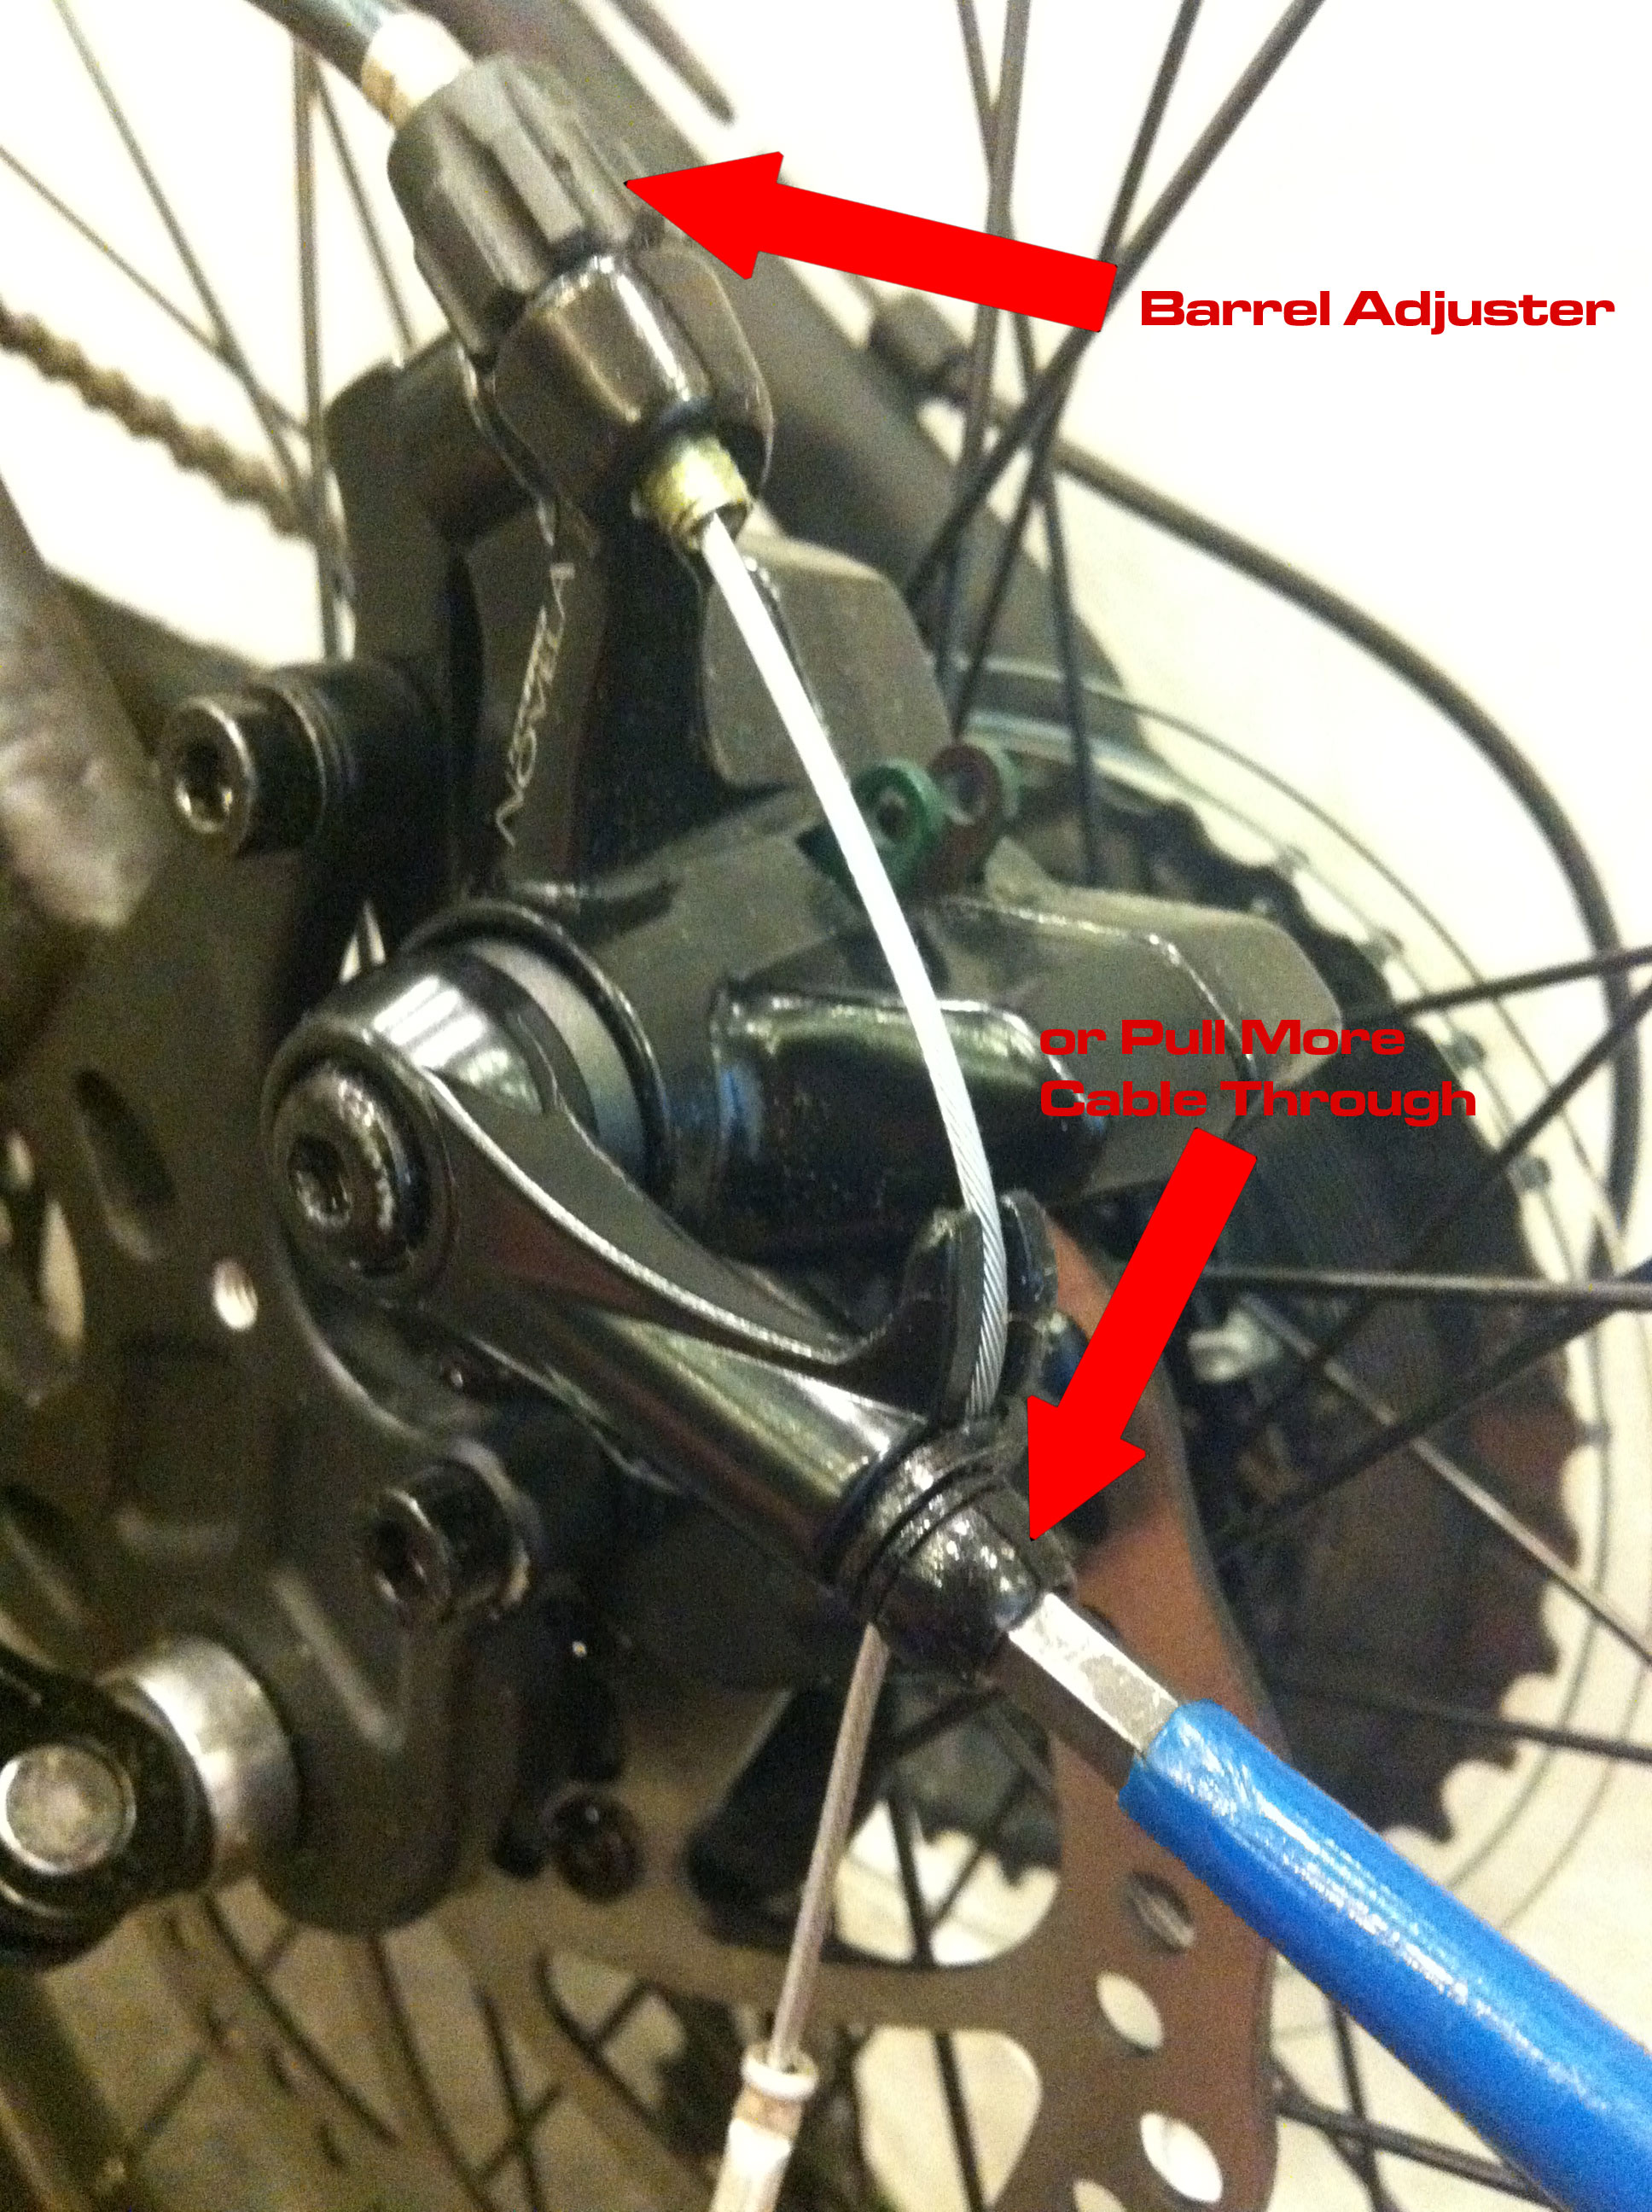 Adjusting Mechanical Disc Brakes Montague Bikes Suspension Wheels And Guides Brake Pads Rear Diagram Img 4464edit